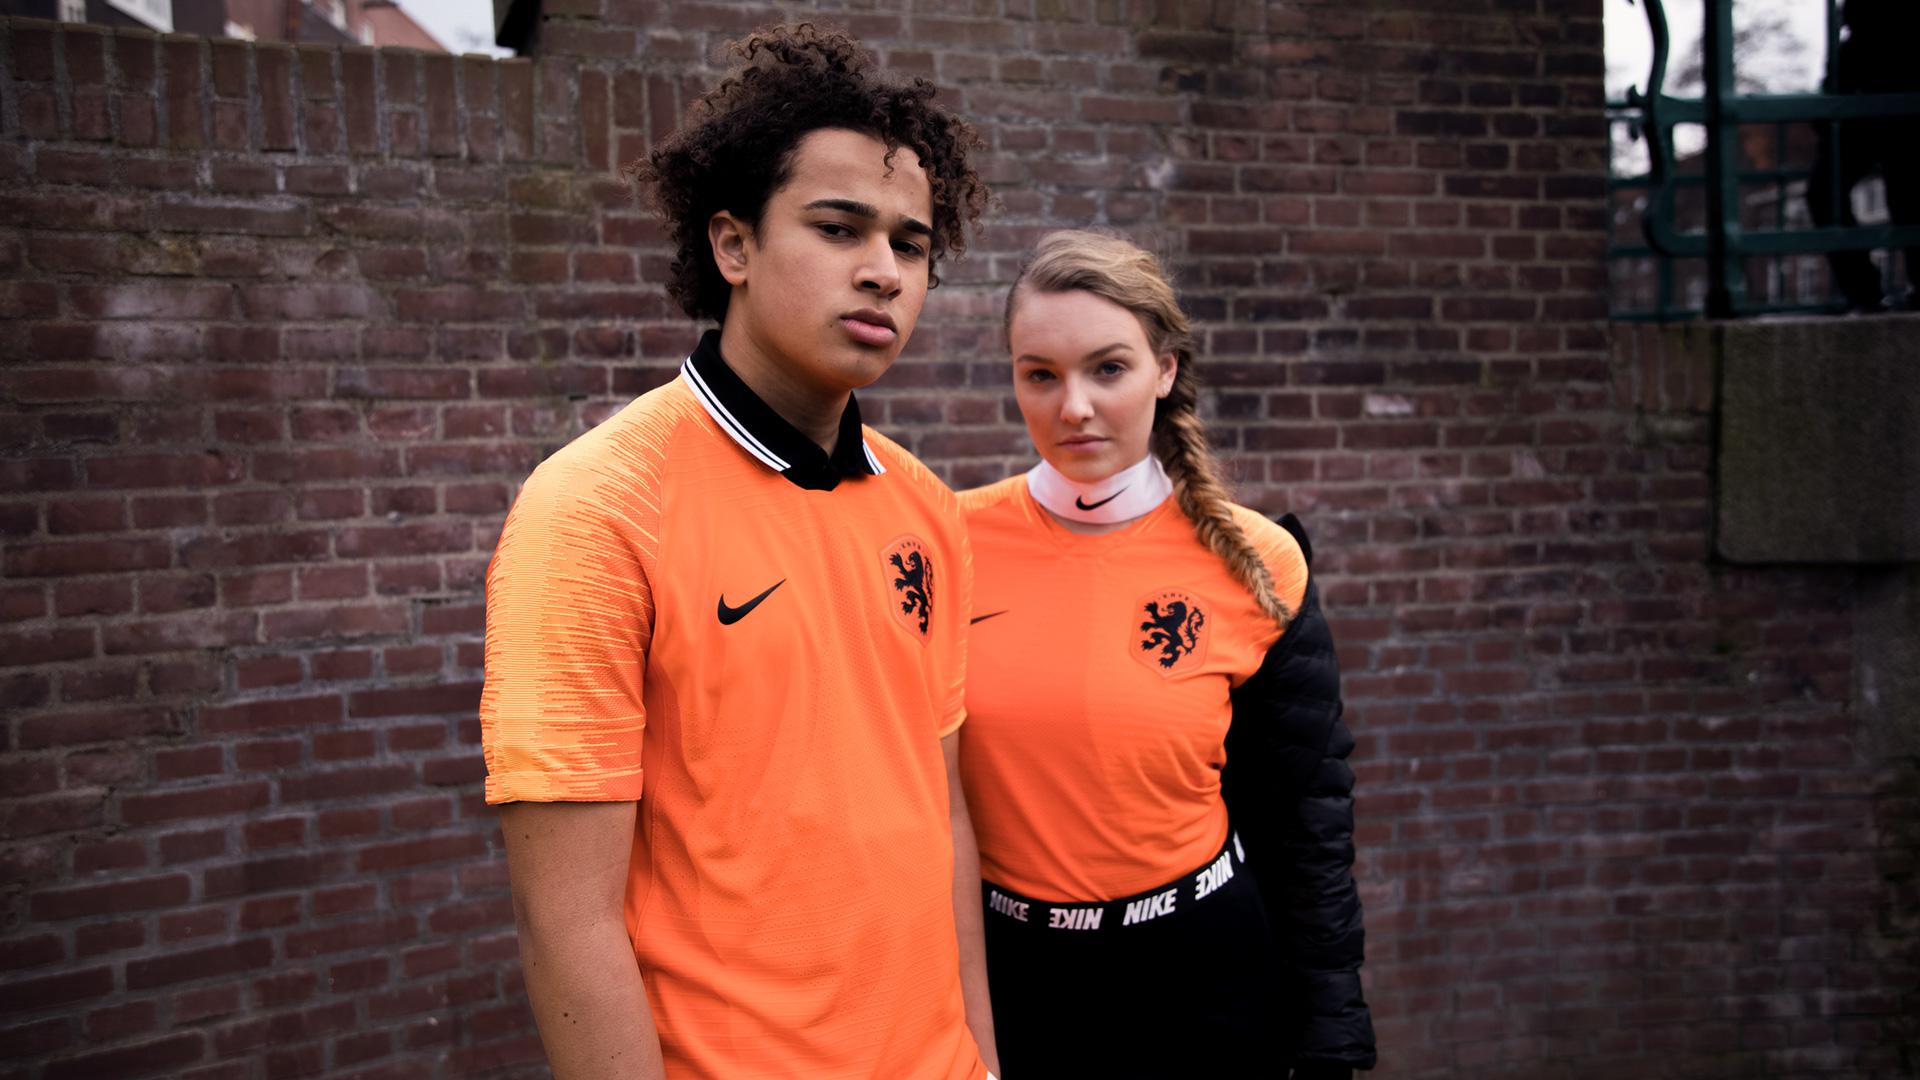 Nederlands Elftal shirt 2018 2019